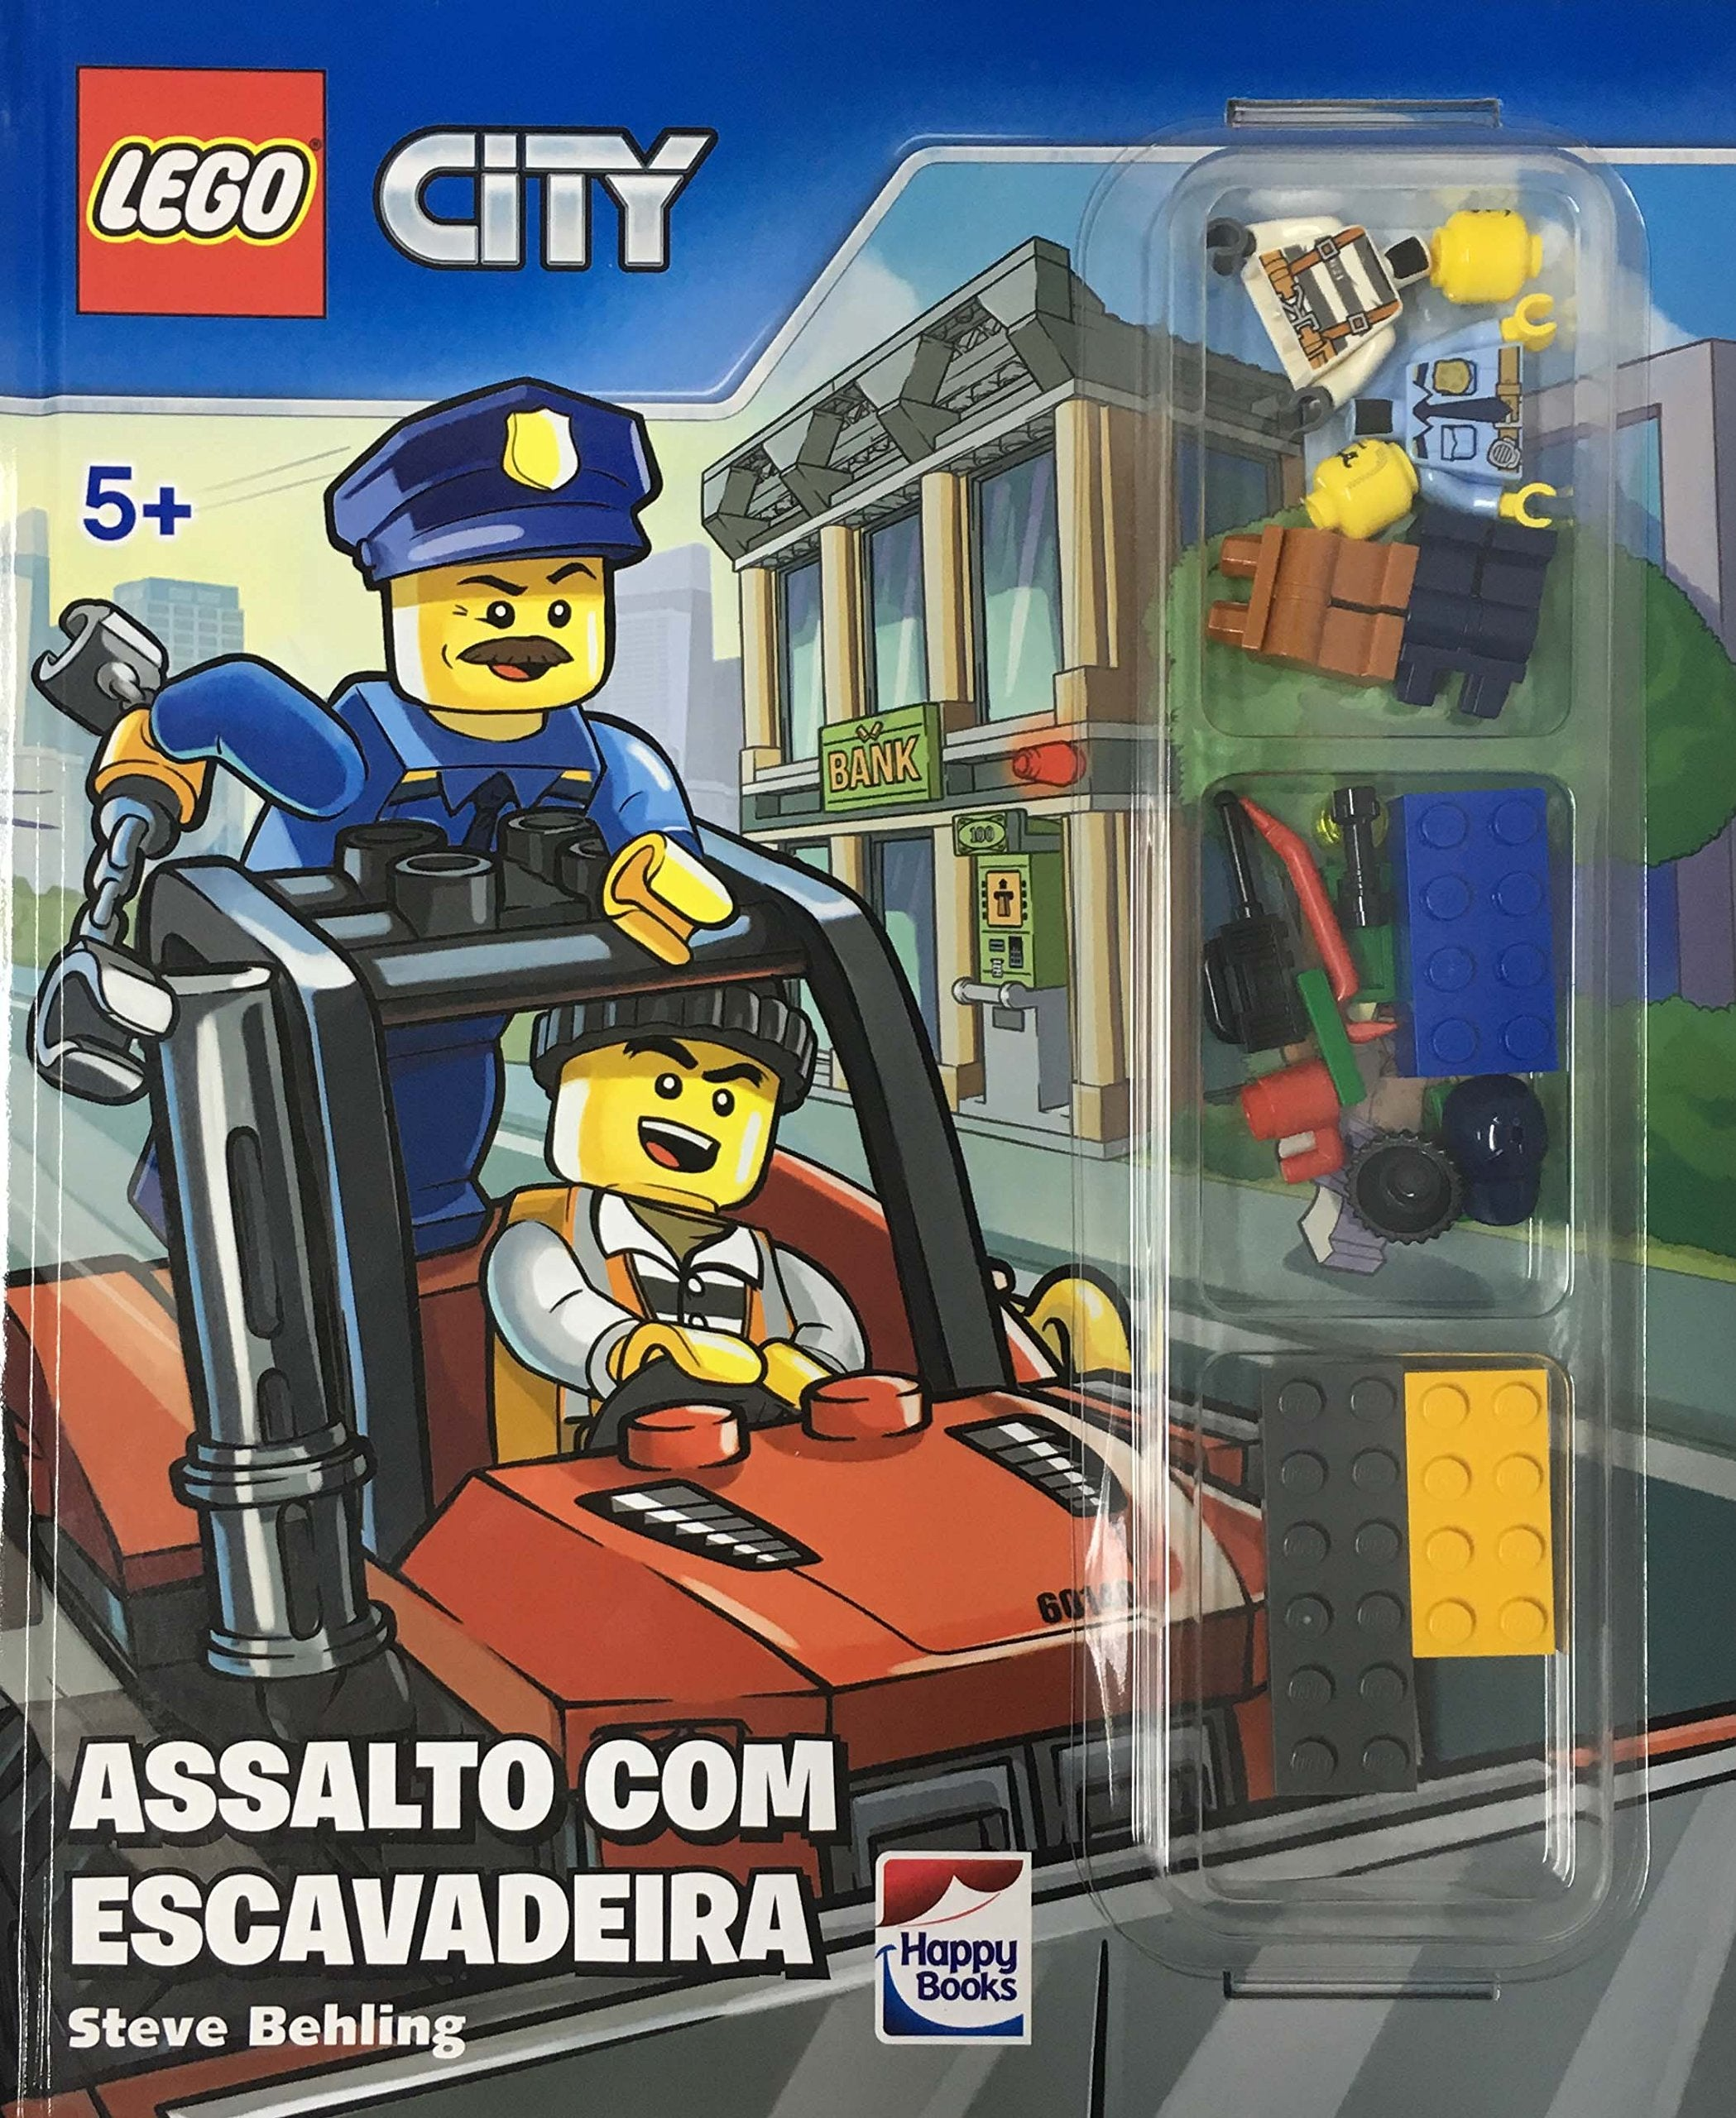 Lego® City - Assalto Com Escavadeira / Lego City - Assault With Excavator